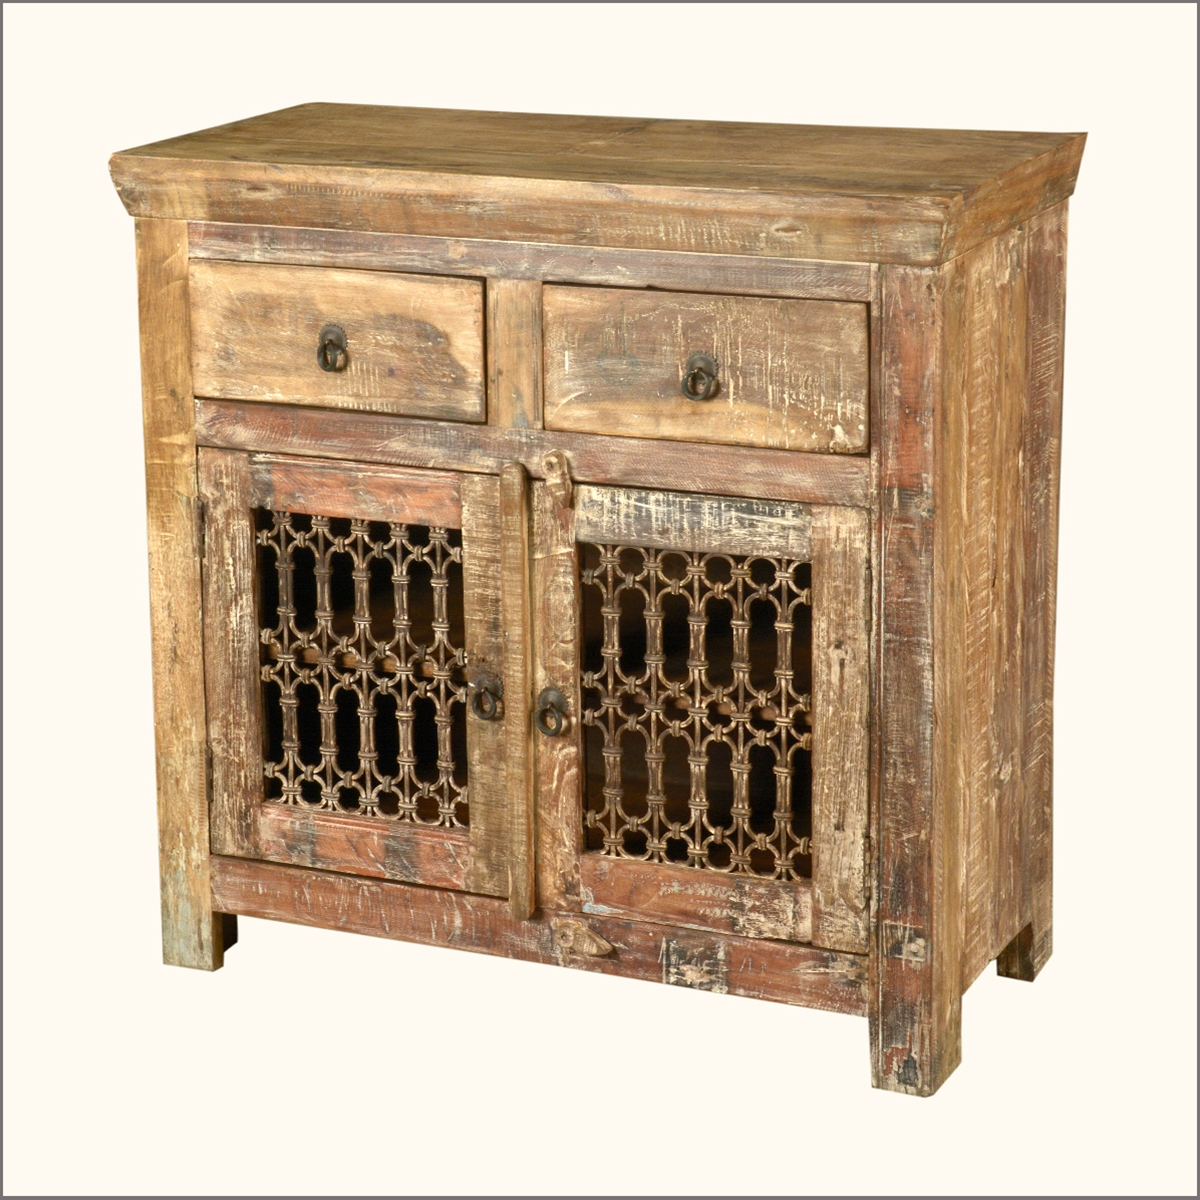 Marvelous photograph of Reclaimed Wood Iron Distressed Sideboard Storage Buffet Cabinet eBay with #B48317 color and 1200x1200 pixels